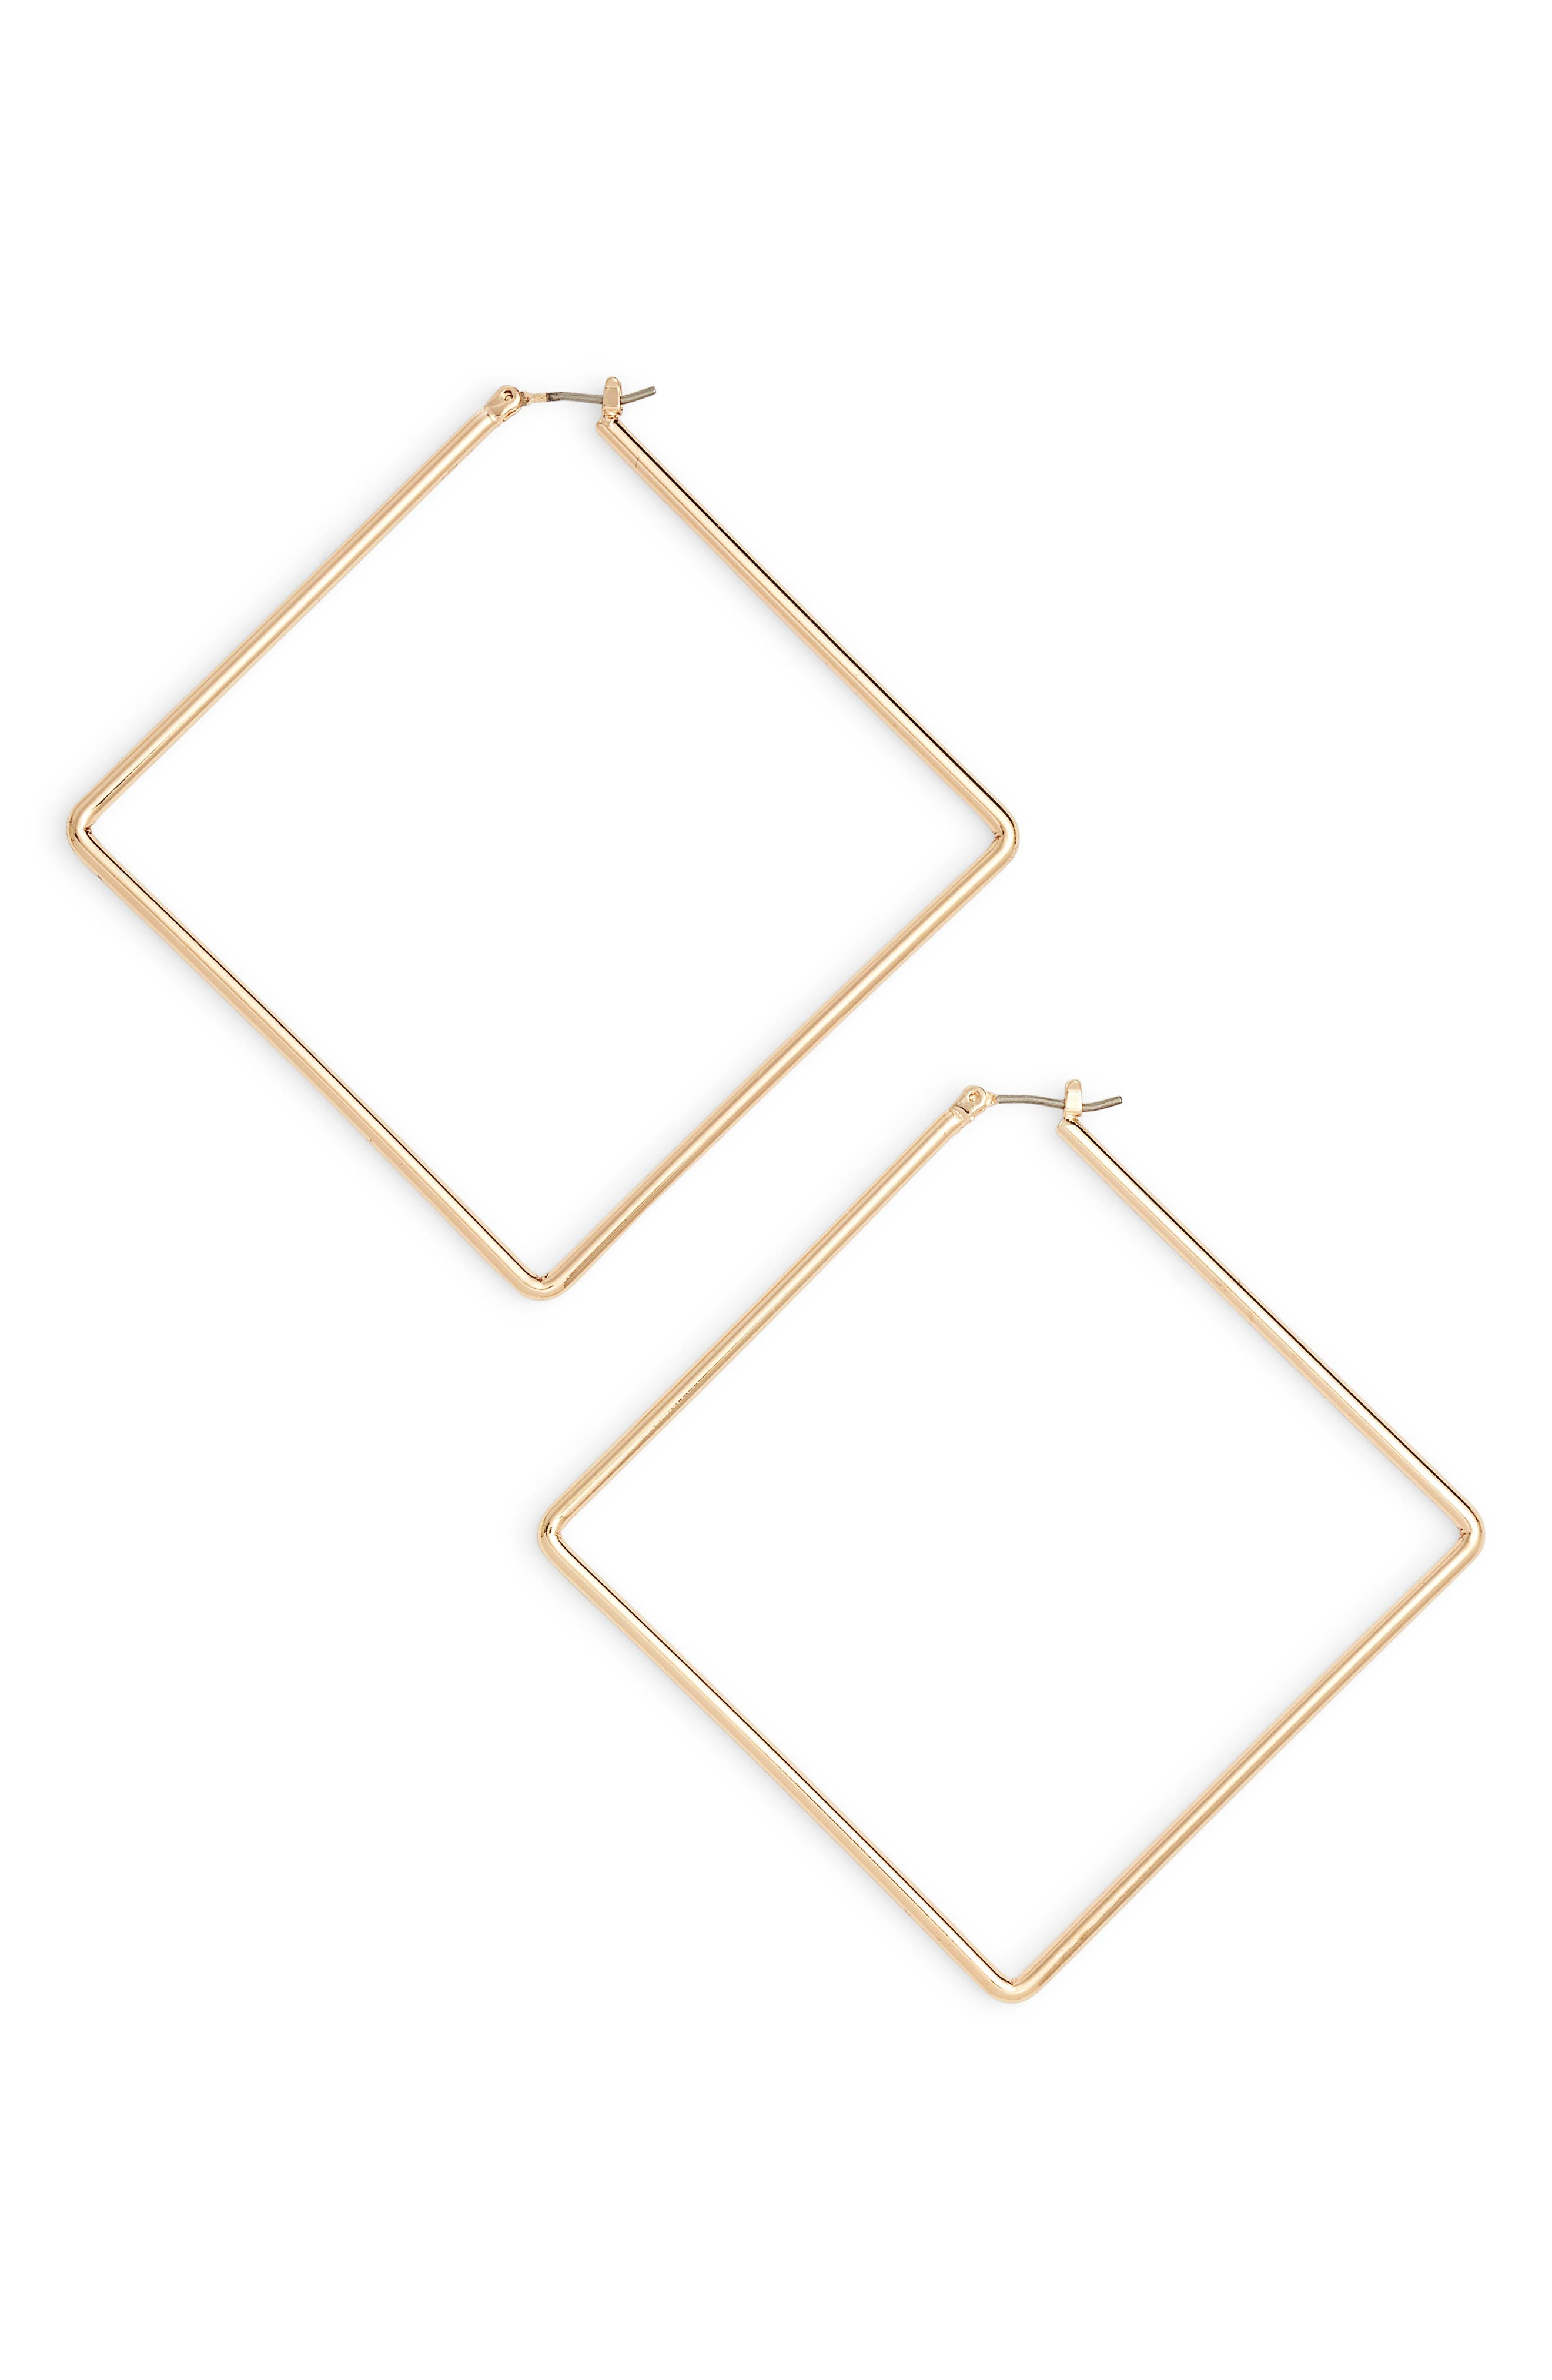 UNCOMMON JAMES BY KRISTIN CAVALLARI Girl Boss Square Hoop Earrings, Main, color, GOLD